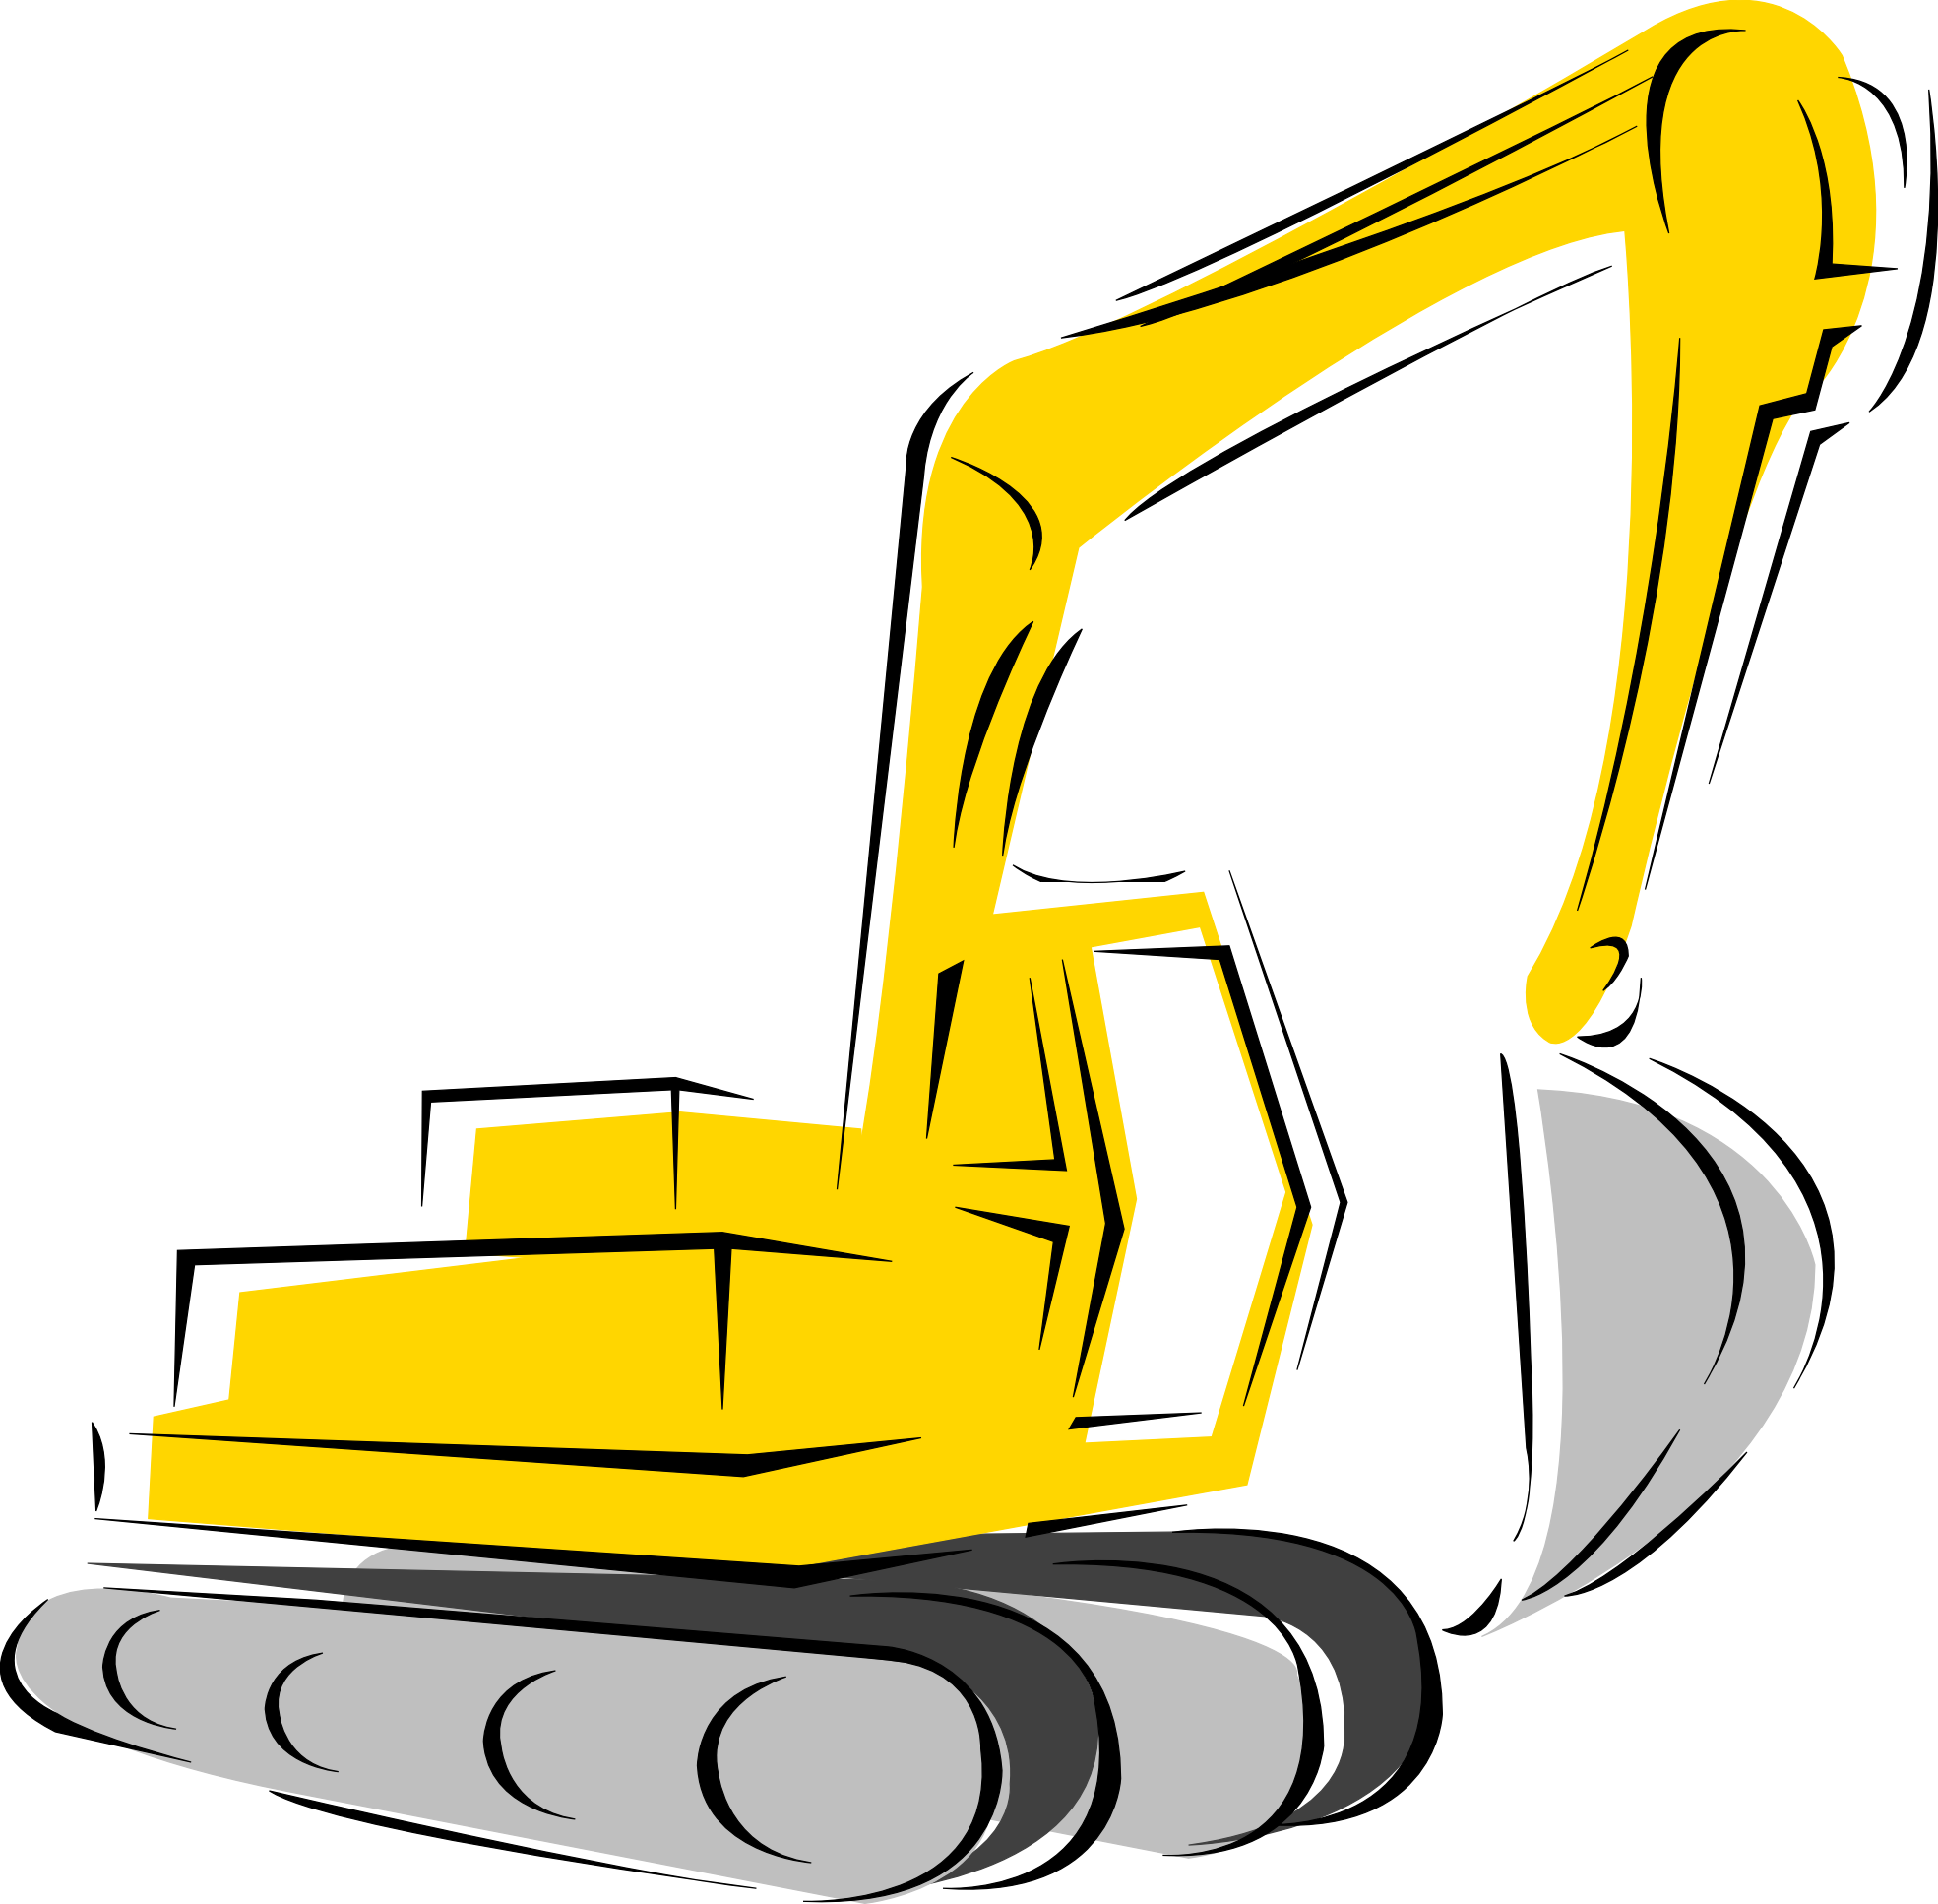 Backhoe clipart earthmoving equipment. Loader heavy clip art